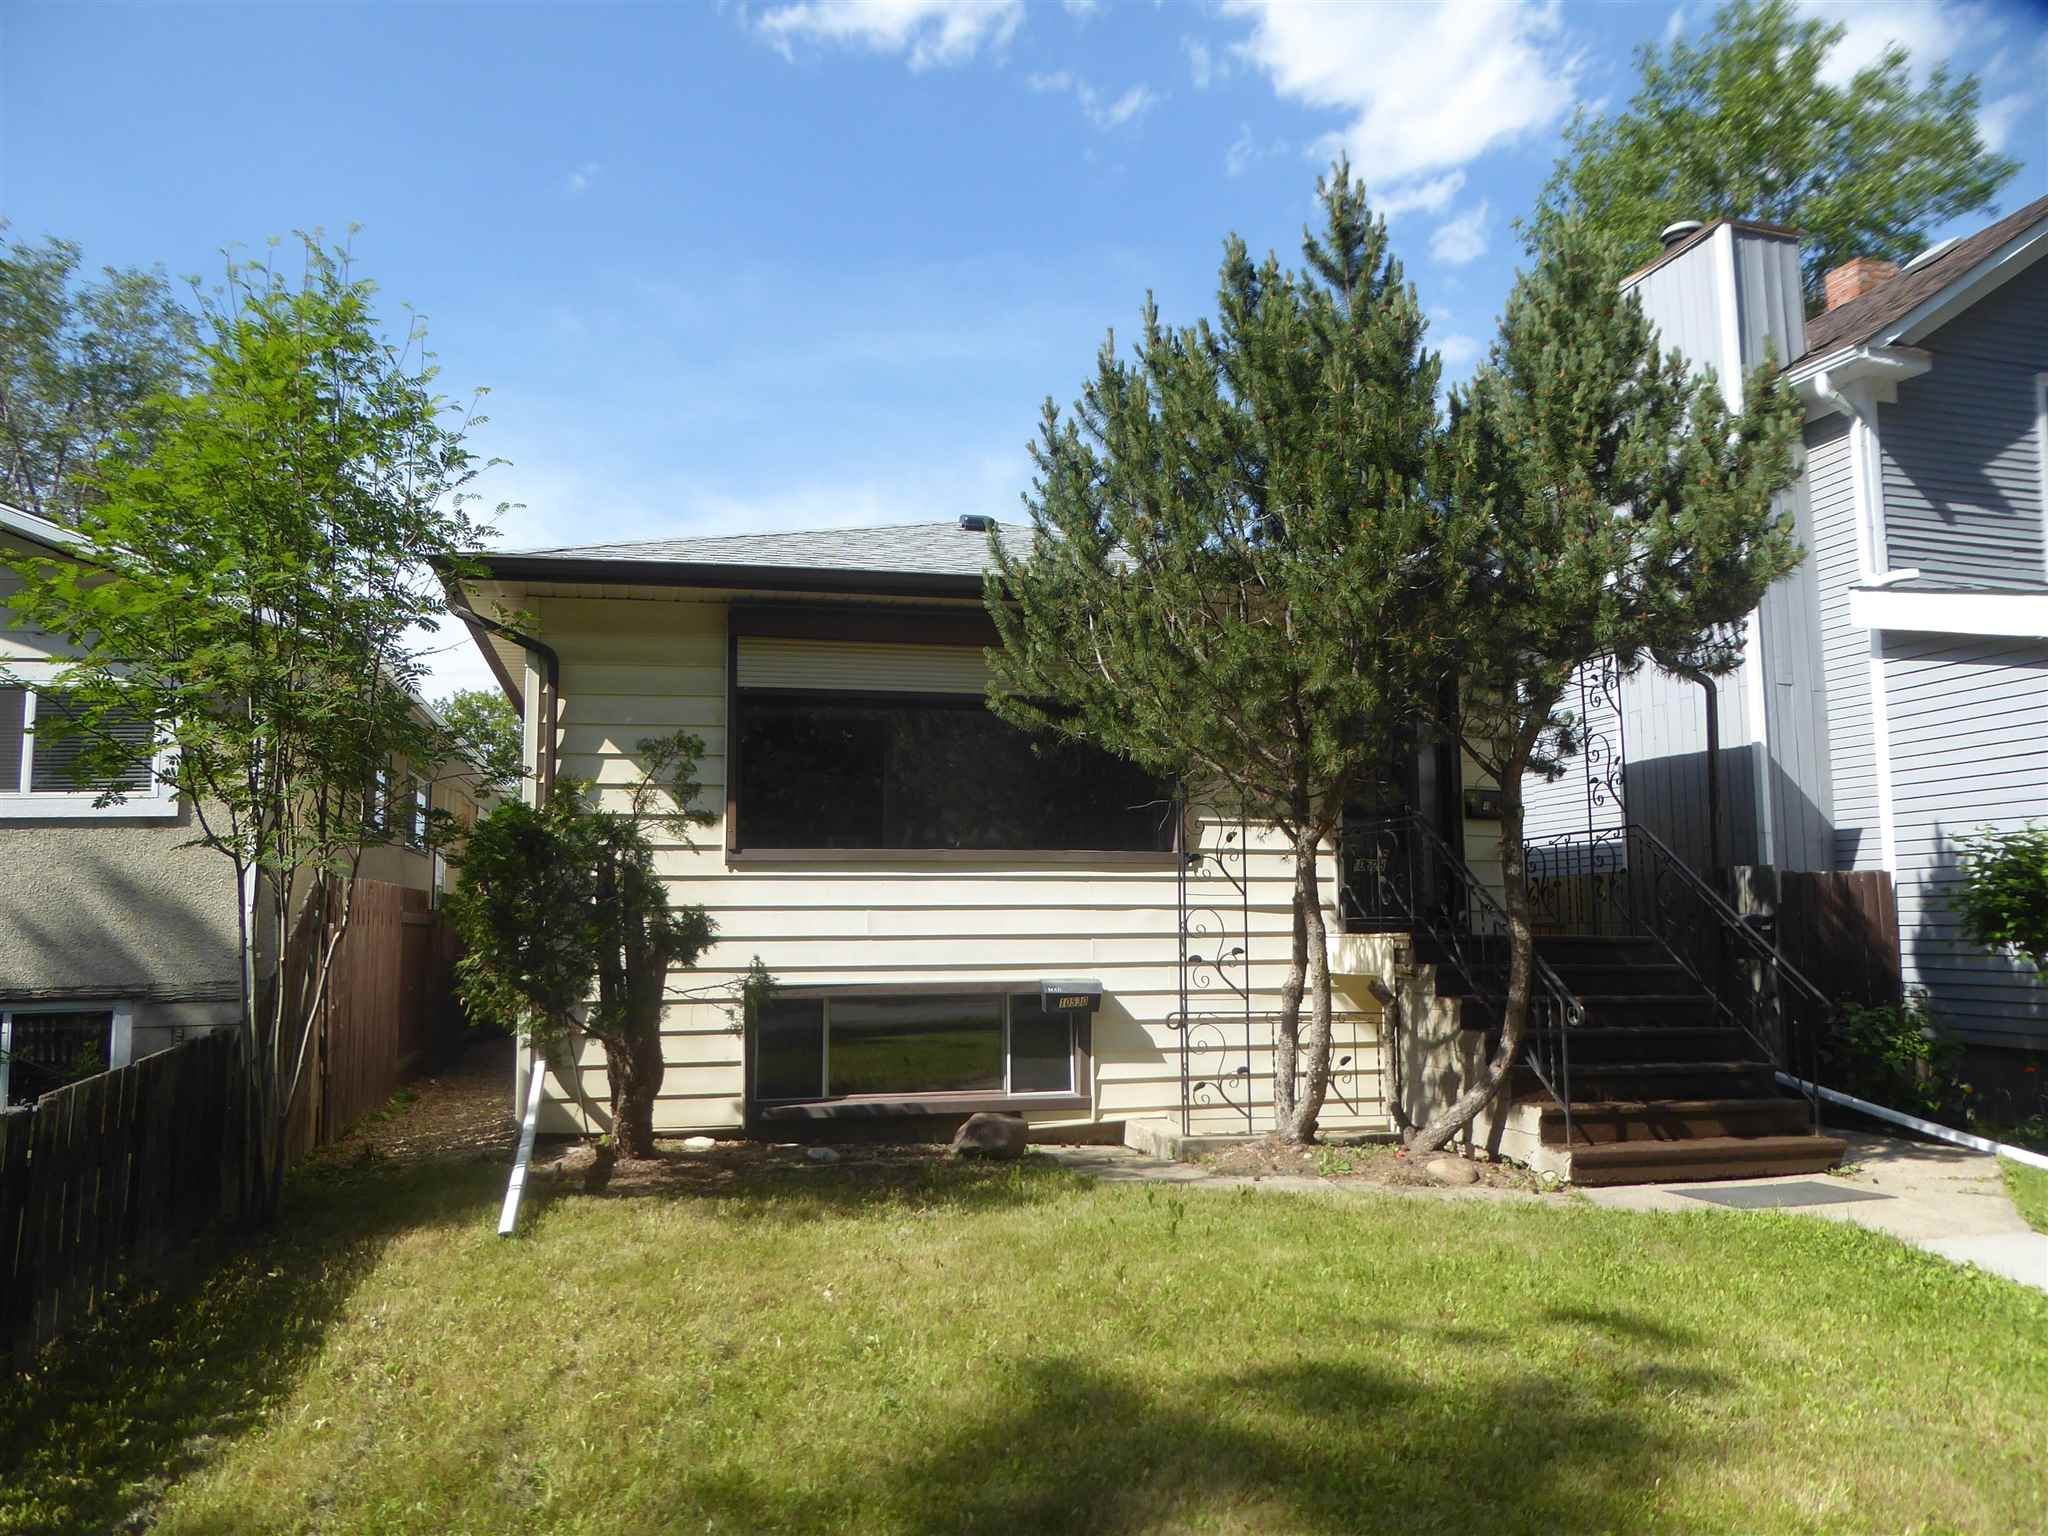 """Welcome to this spacious 1200' raised bungalow with two recently renovated """"in law"""" basement suites with separate entrances in a terrific low traffic cul de sac in Queen Alexandra!  The main floor features huge living and dining rooms, an eat in kitchen, a 4 pc main bath and 3 bedrooms.  The lower level with huge windows throughout has a private south entry that  leads to the front """"in law"""" suite of the basement with a kitchenette, living room, bedroom and 4 pc bath.  The side entrance has access to the north part of the basement that includes a newer kitchenette, living room, a  4 pc and a bedroom.  The furnace, hot water tank and washer and dryer are found in the common area.  The property is fenced and includes a large double detached garage. The house also has newer shingles.  Close to many great amenities of the south side including Queen Alex School, Strathcona Composite and Pool, the shops and cafes of Whyte Avenue and with easy access to the University of Alberta, it's a must to consider!"""